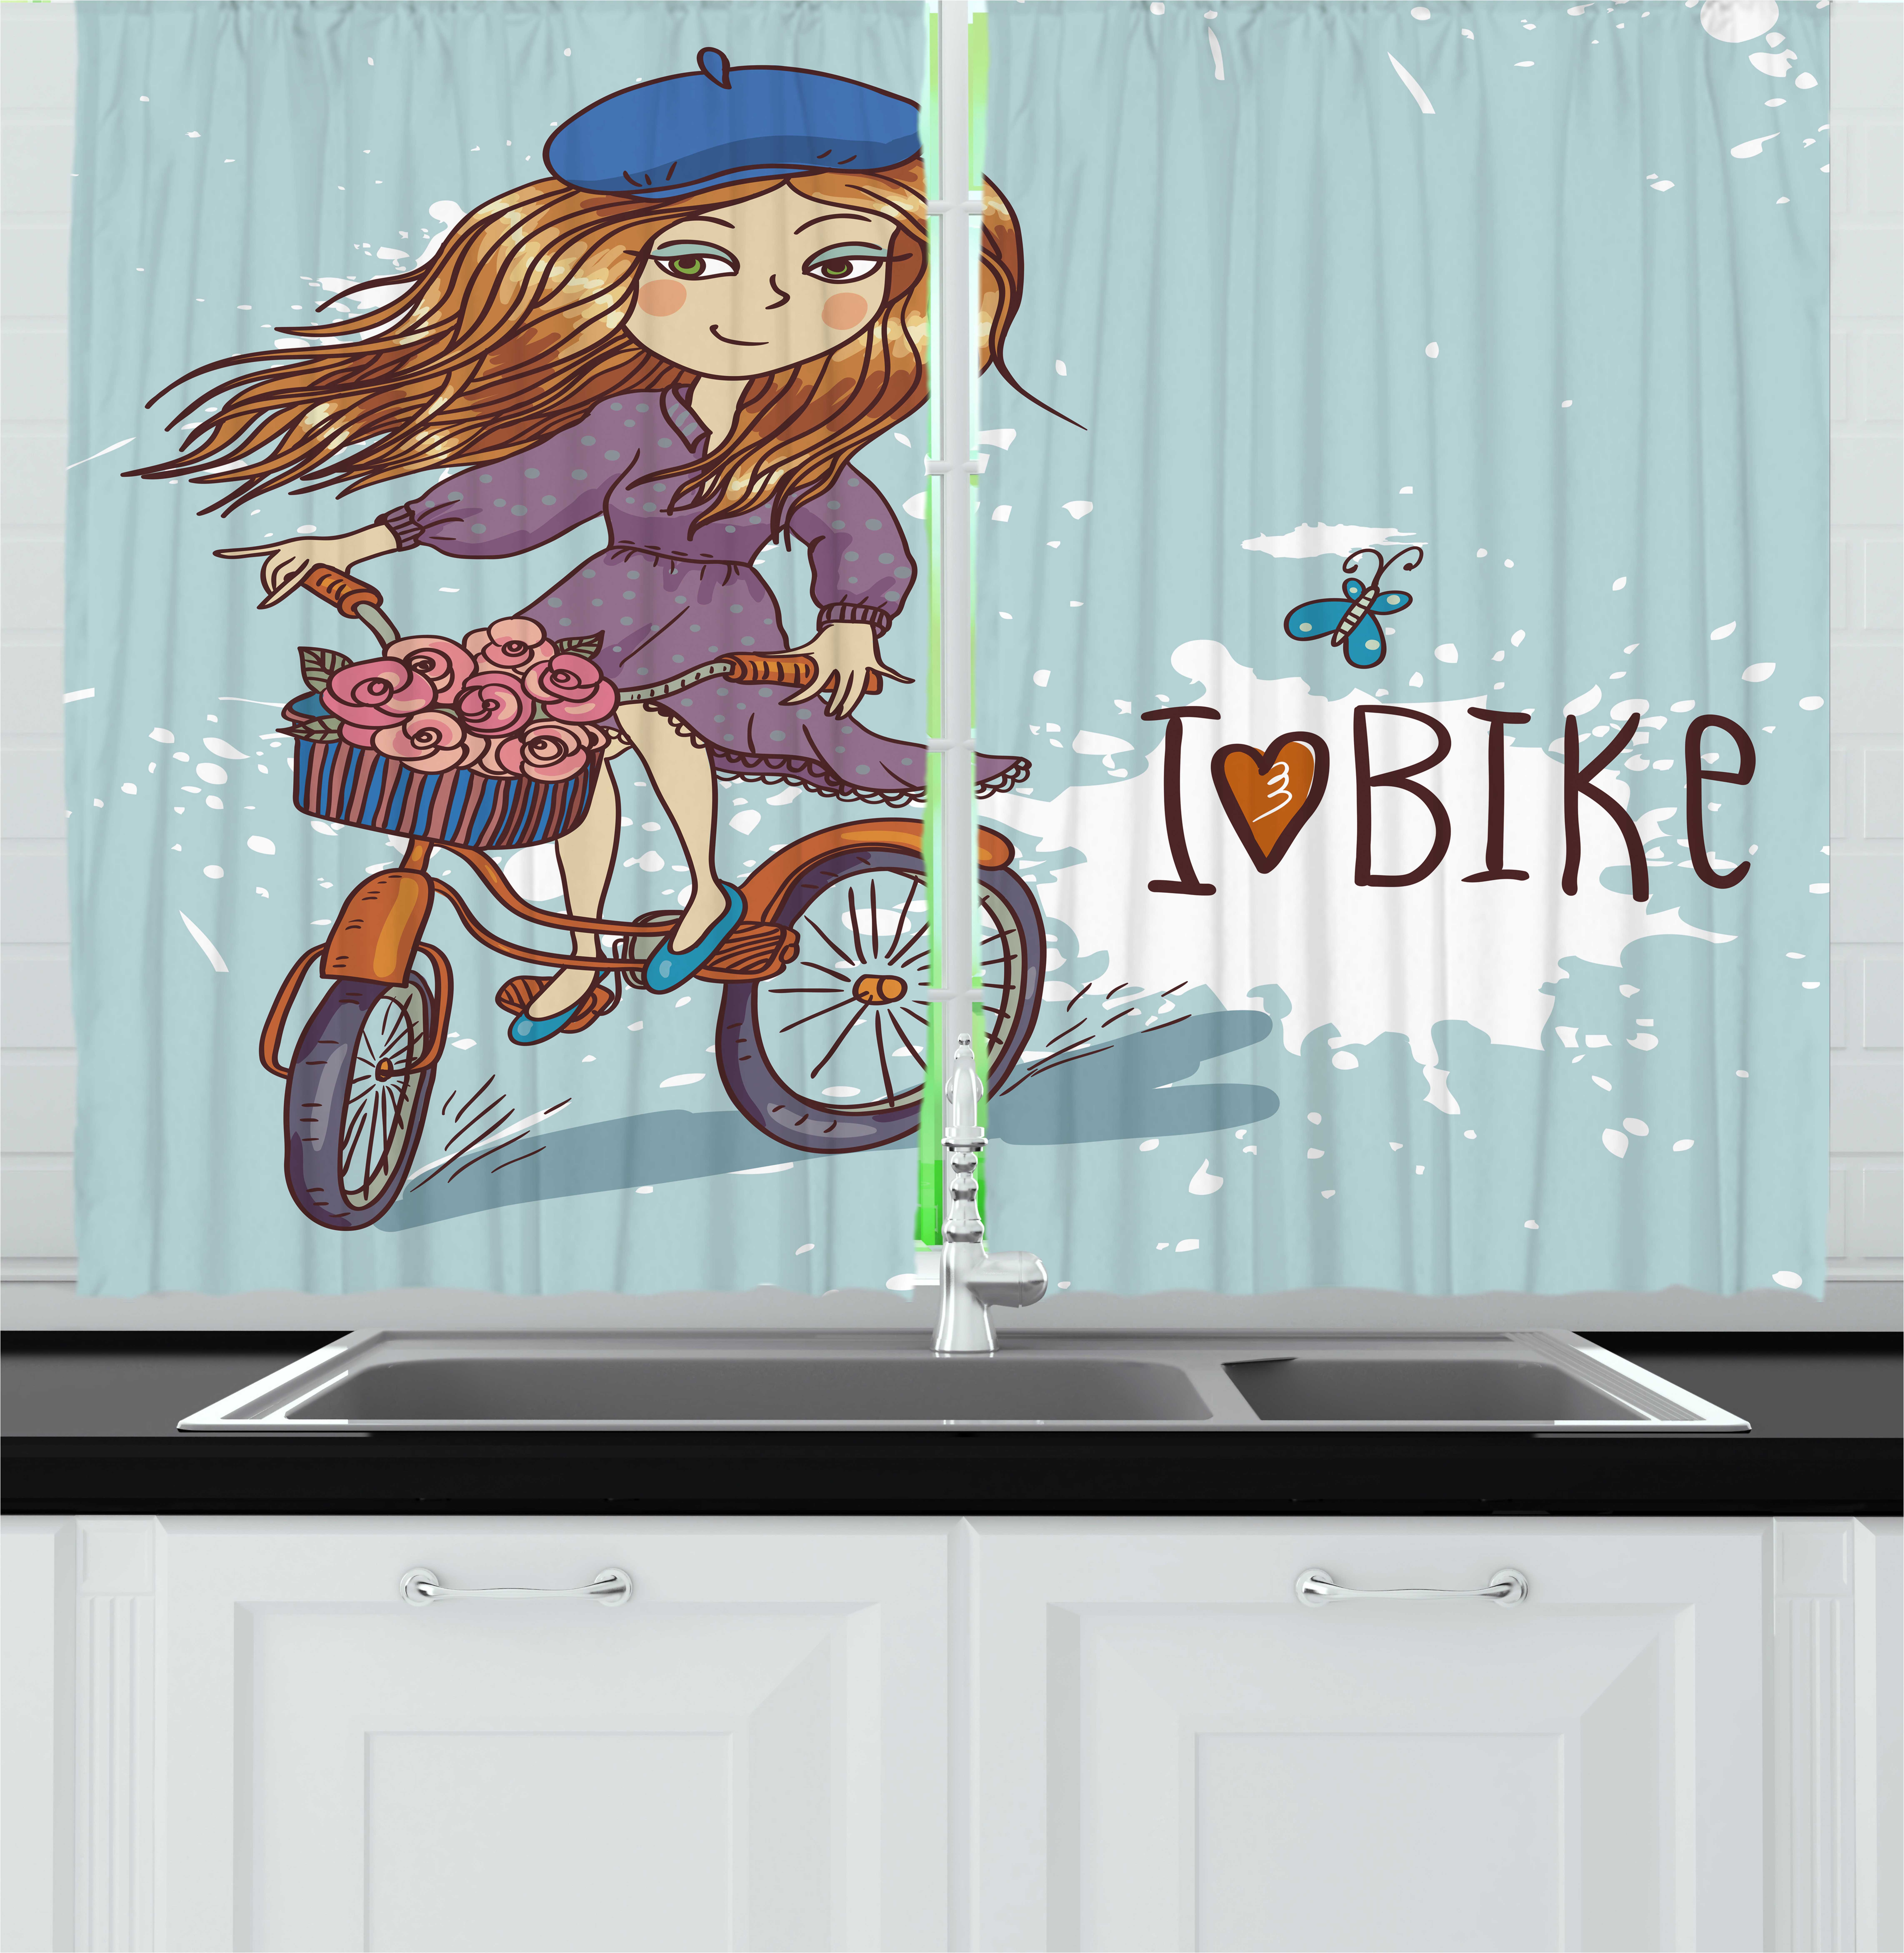 Kids Curtains 2 Panels Set, Cartoon Girl Image with French Hat and a Bike with Flowers Children Image, Window Drapes for Living Room Bedroom, 55W X 39L Inches, Purple Grey and White, by Ambesonne